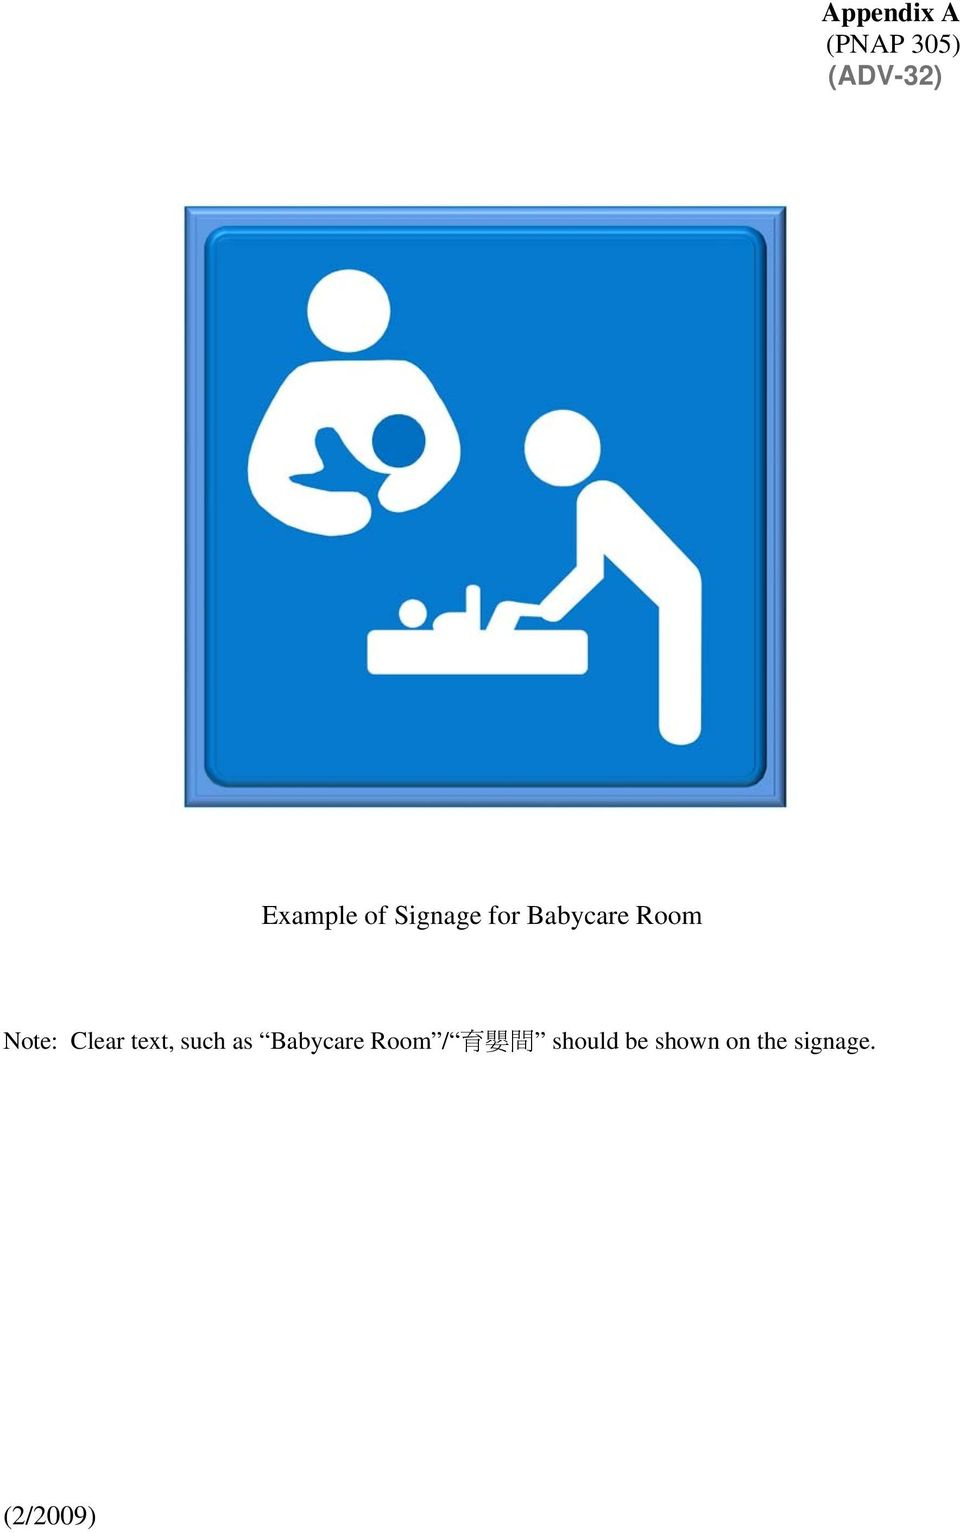 Clear text, such as Babycare Room / 育